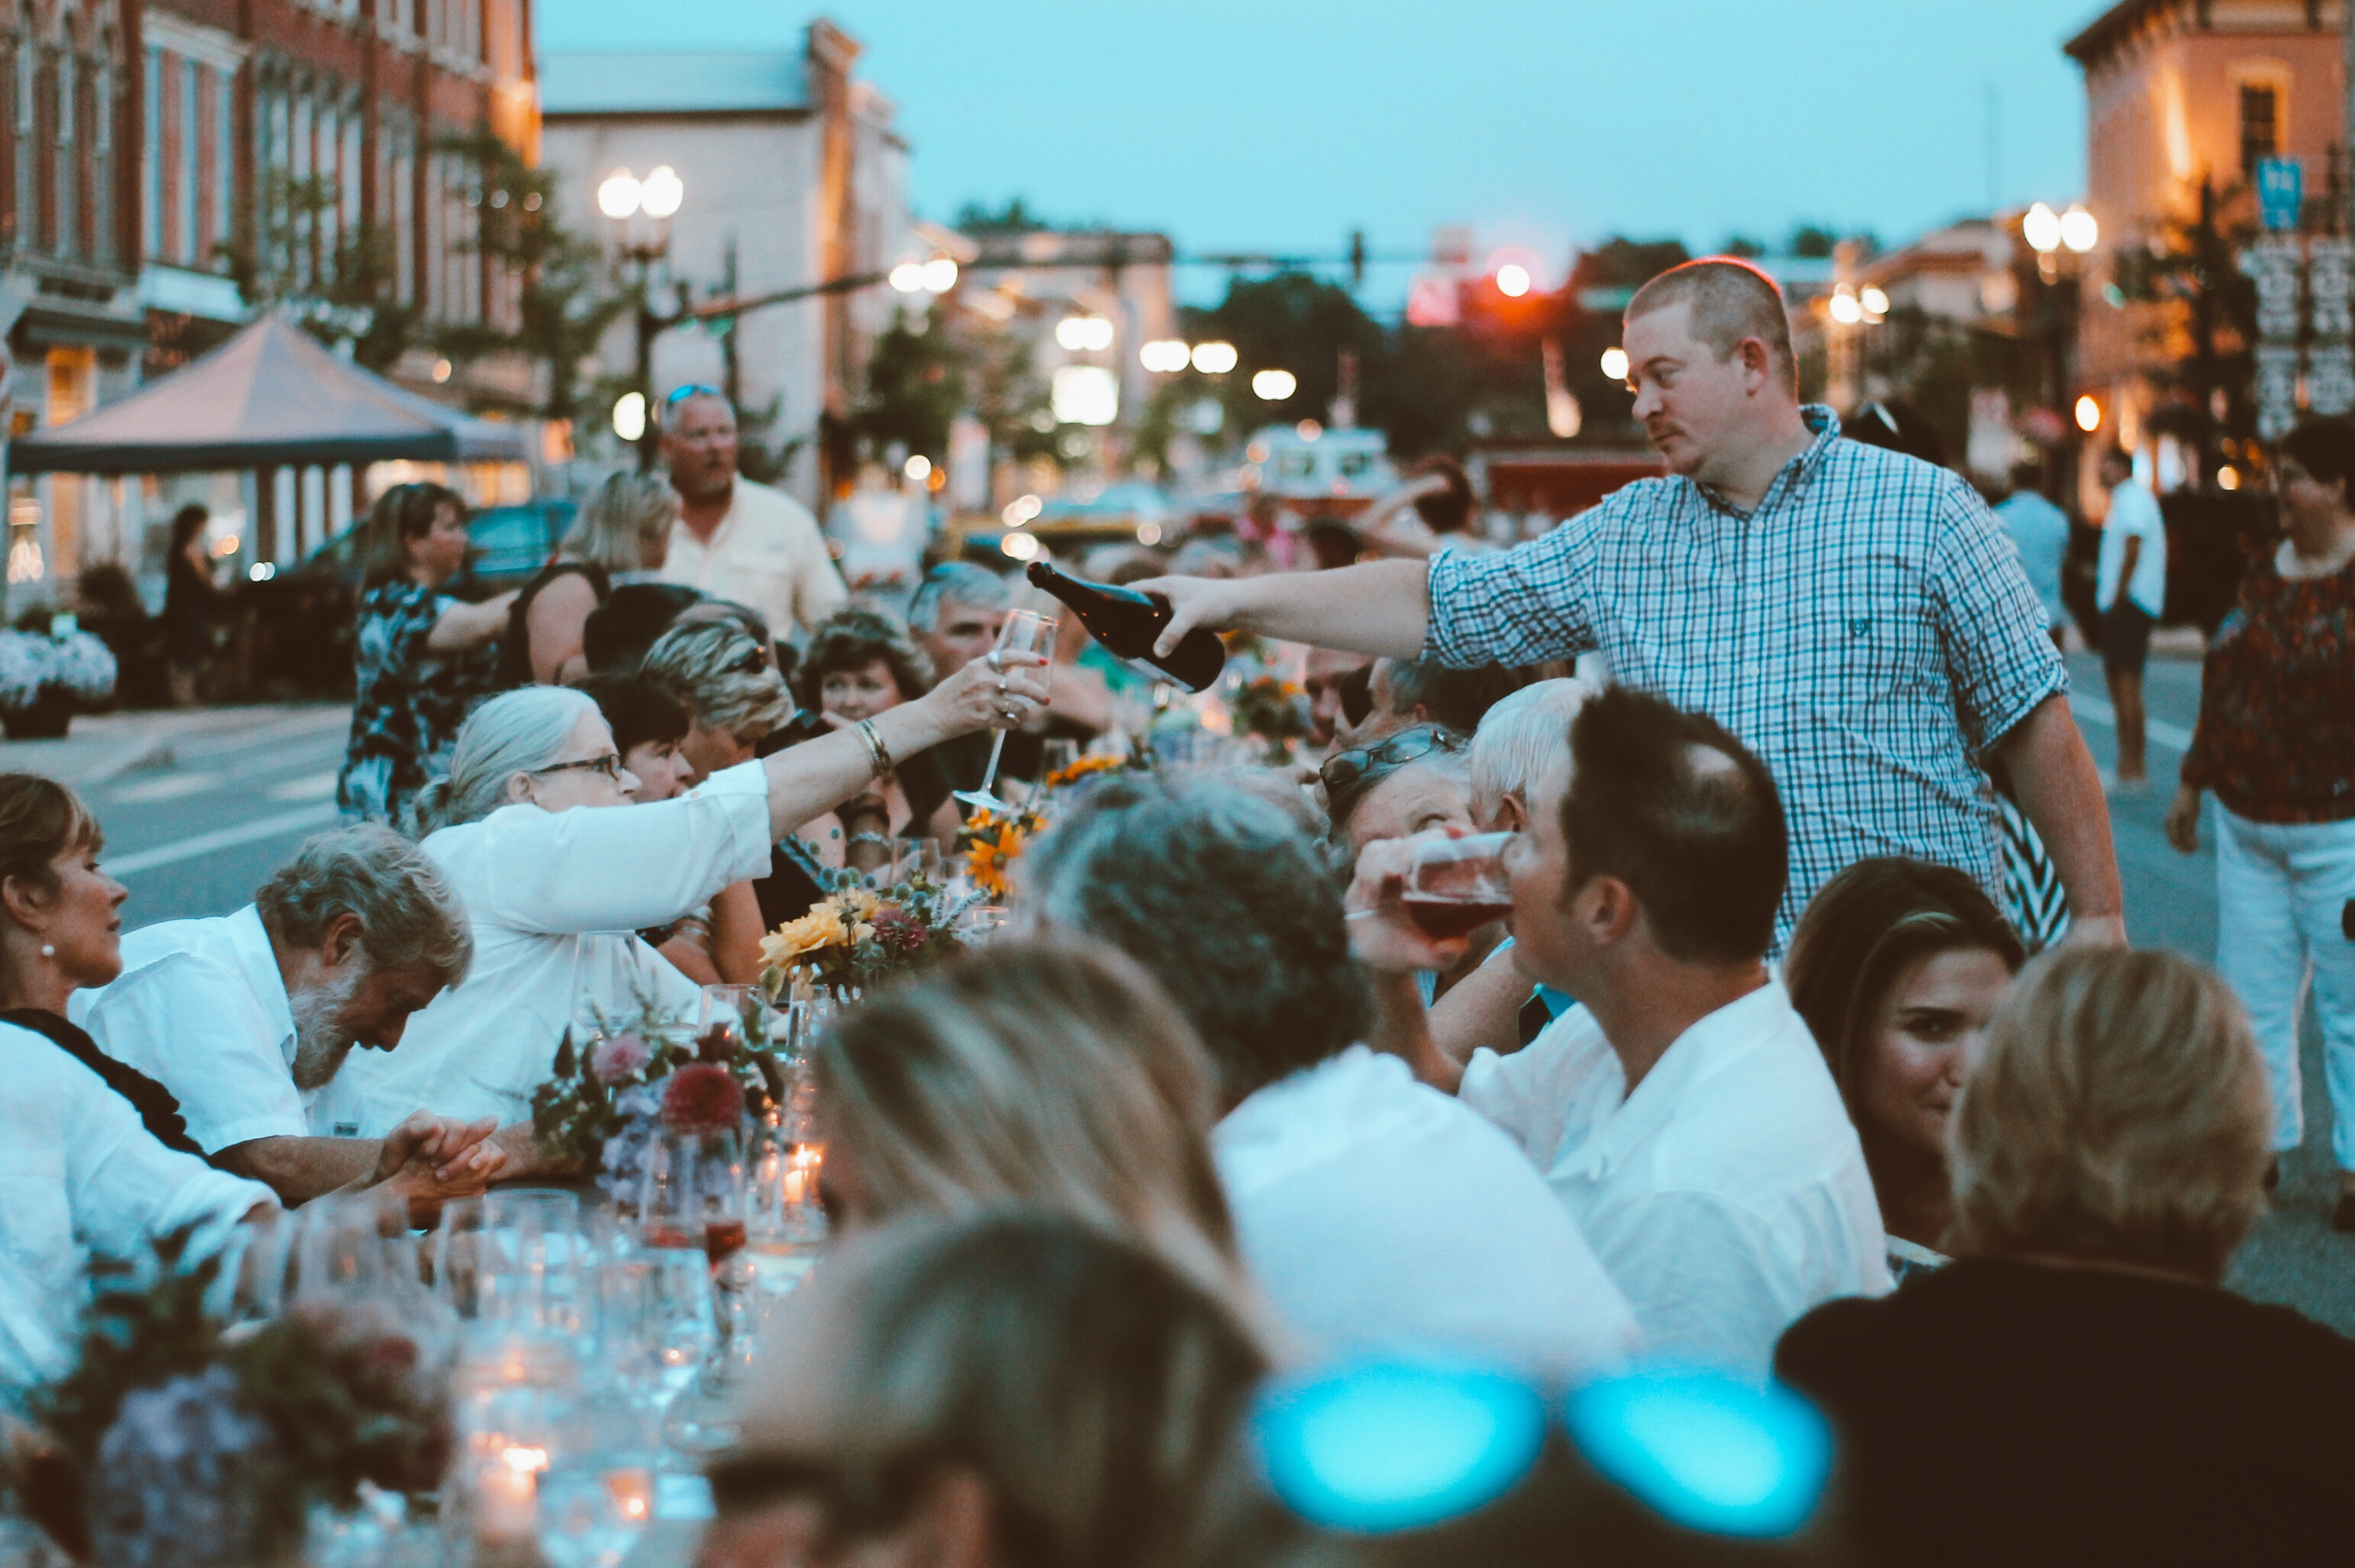 Medina's seen a culinary resurgence mirroring Buffalo's in scale over the past 15 years. Pictured here is one of their popular annual events, a farm-to-table dinner on Main Street. (Francesca Bond/Buffalo News)